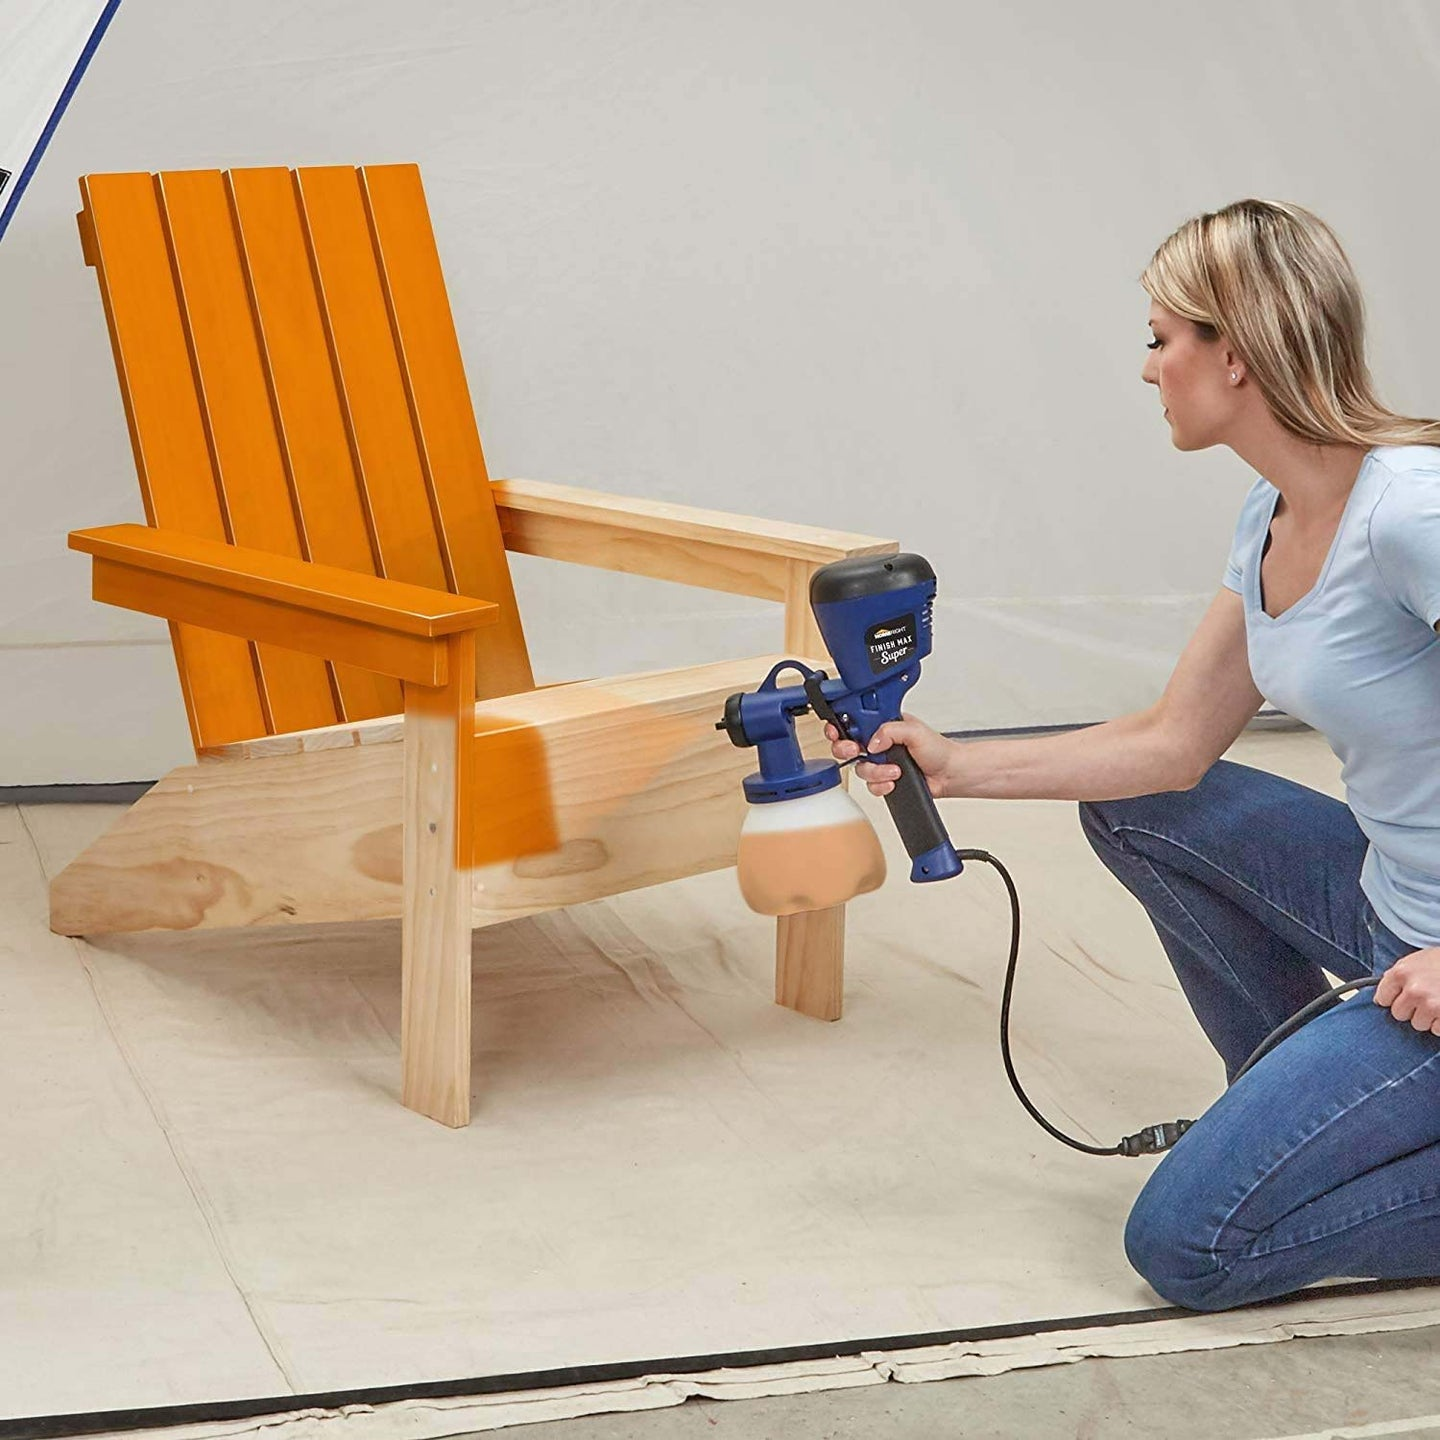 Woman spray painting a chair